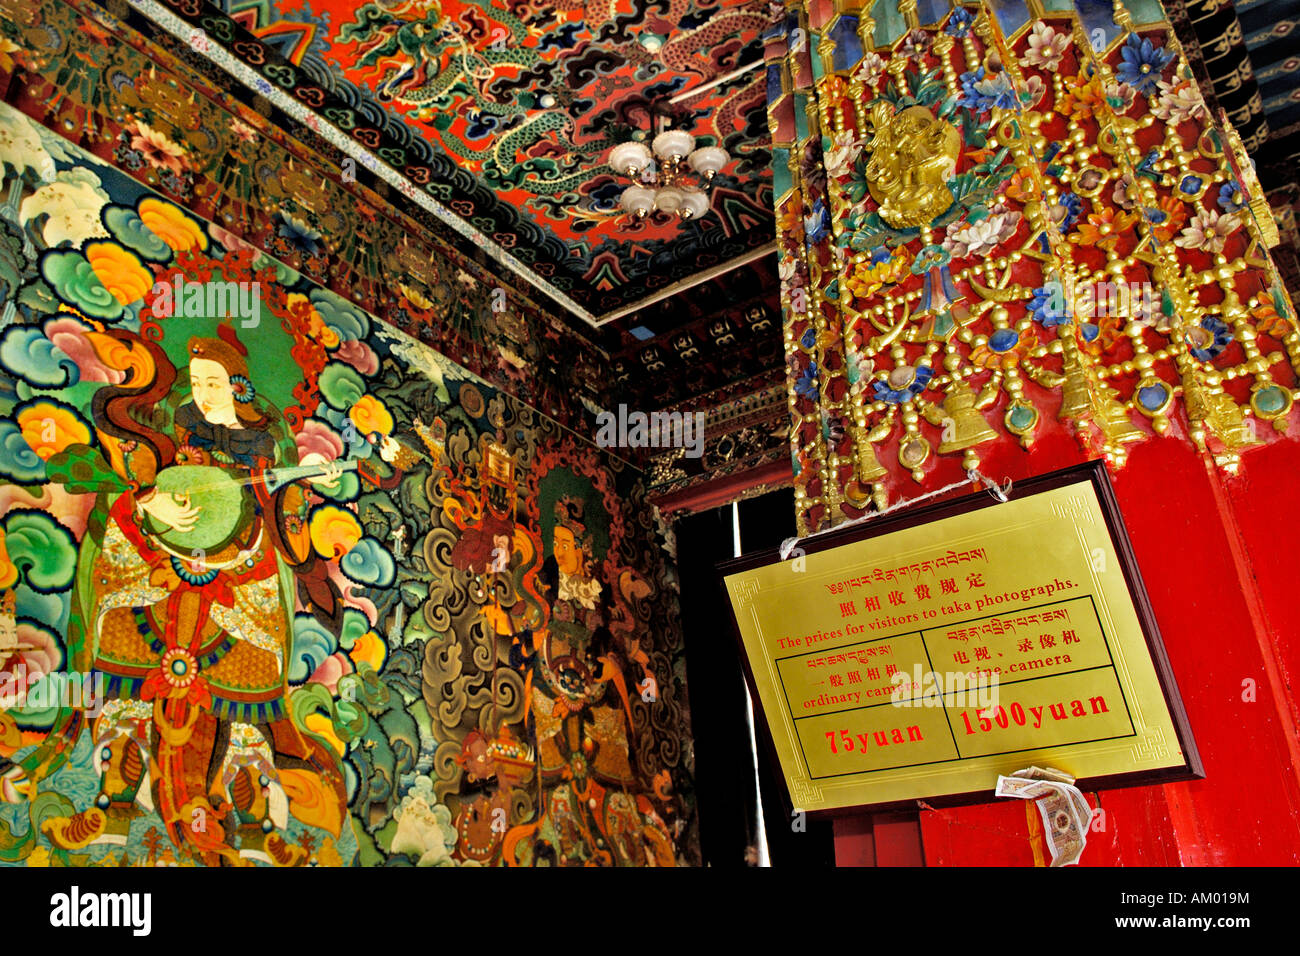 Wall and ceiling paintings, sign with prices for taking photos or making films, Jamkhang Chenmo monastery, Tashilhunpo, - Stock Image